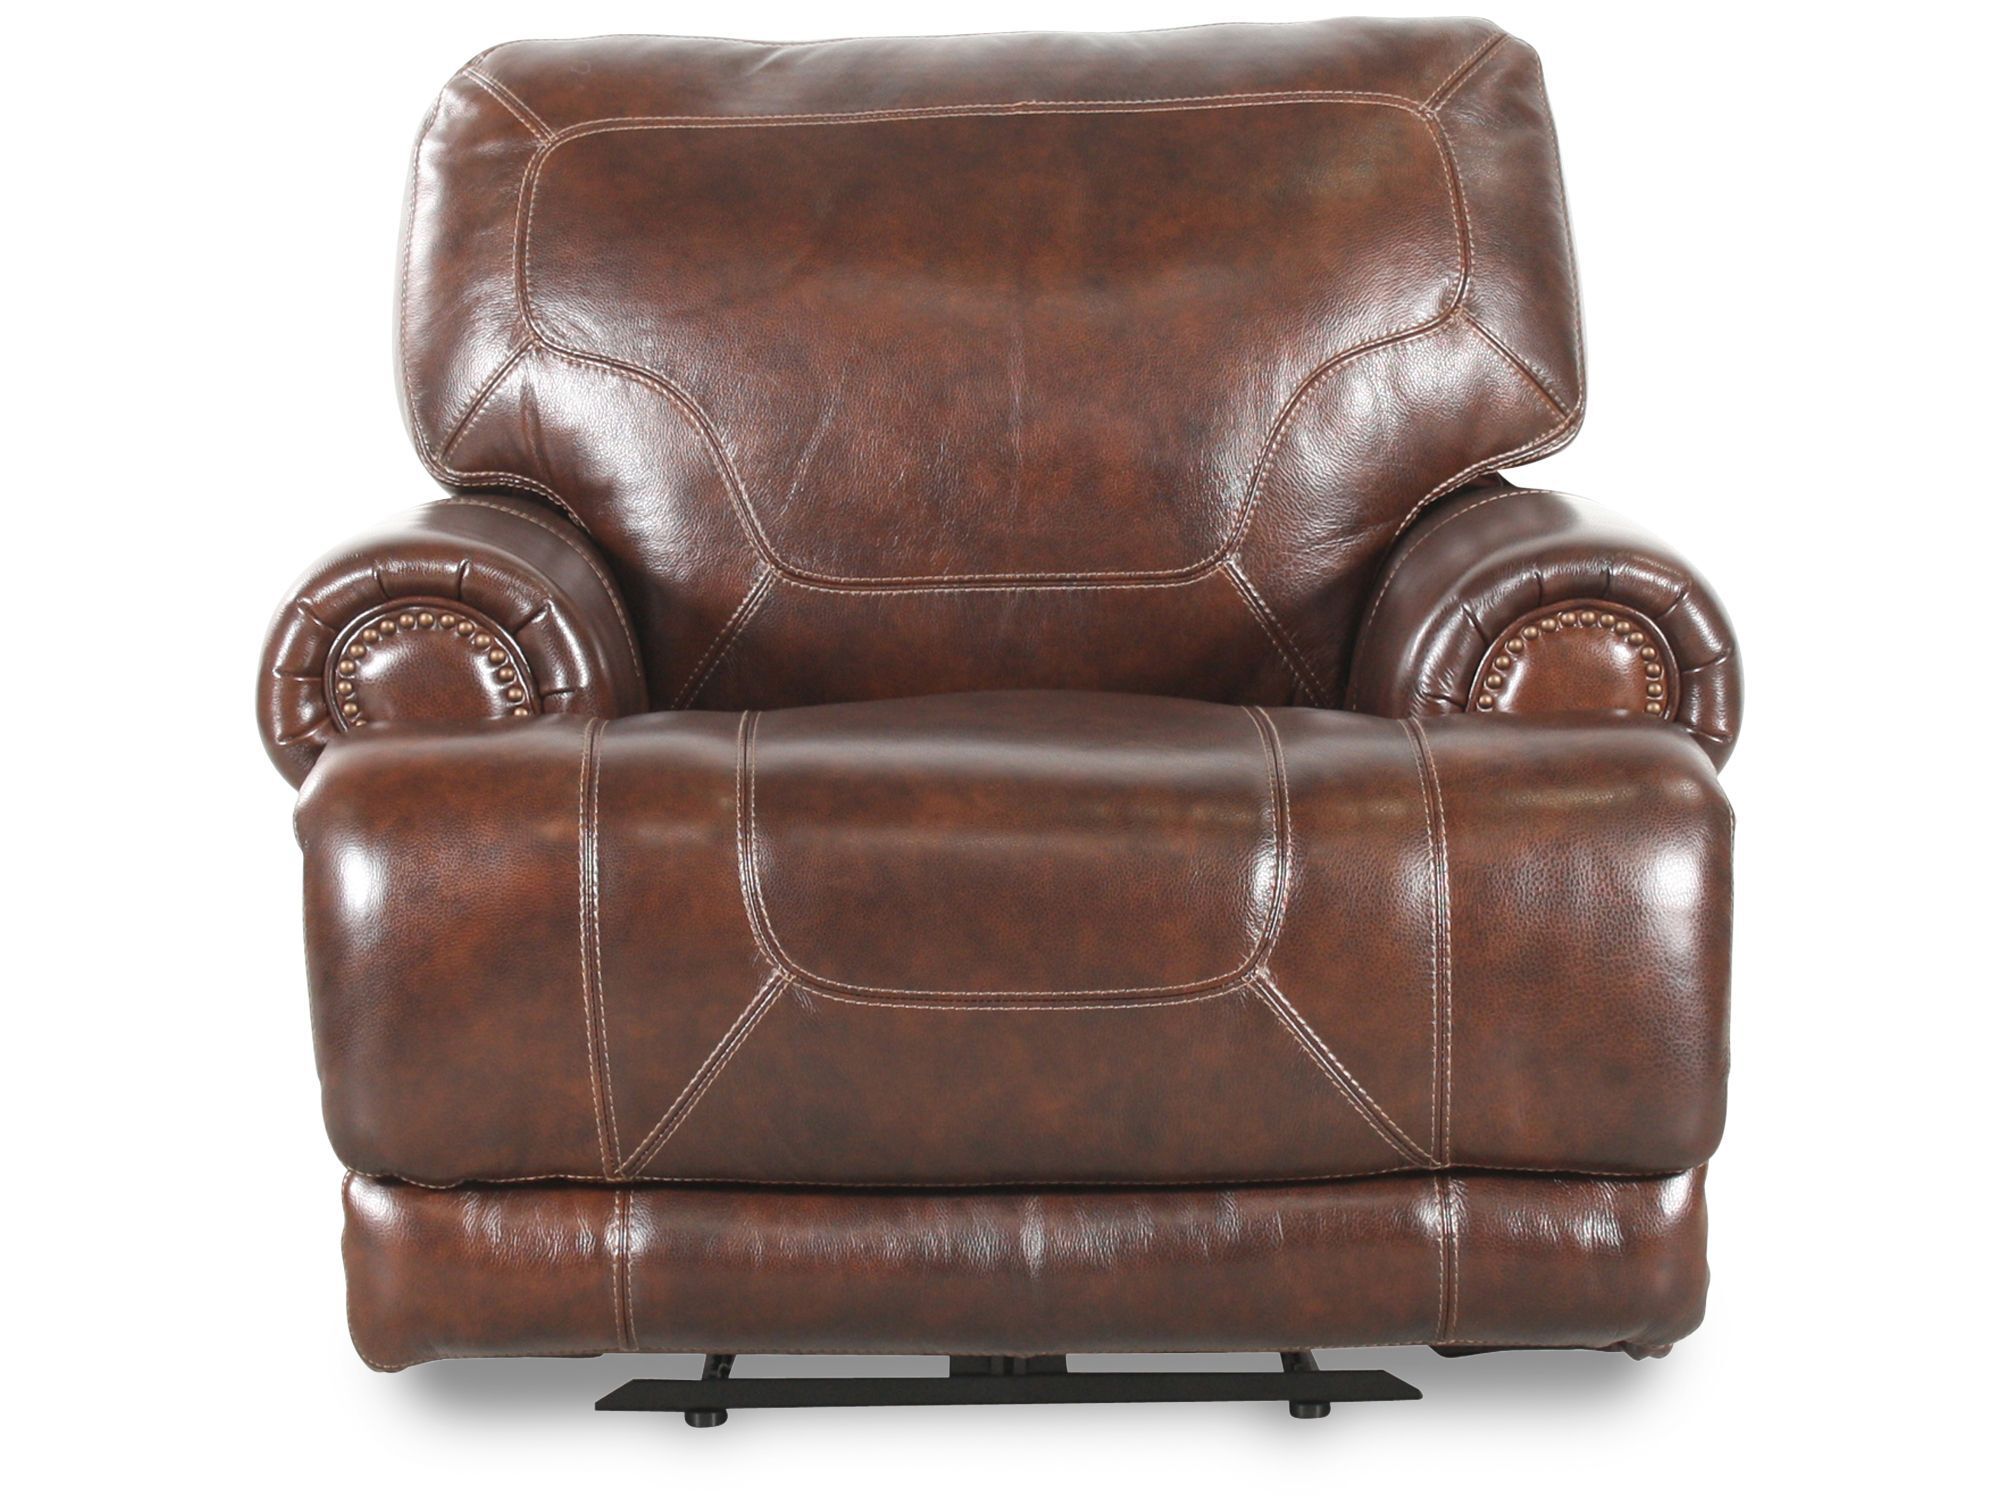 Simon Li Leather St&ede Coffee Recliner ...  sc 1 st  Mathis Brothers & Recliners - Reclining Chairs u0026 Sofas | Mathis Brothers islam-shia.org